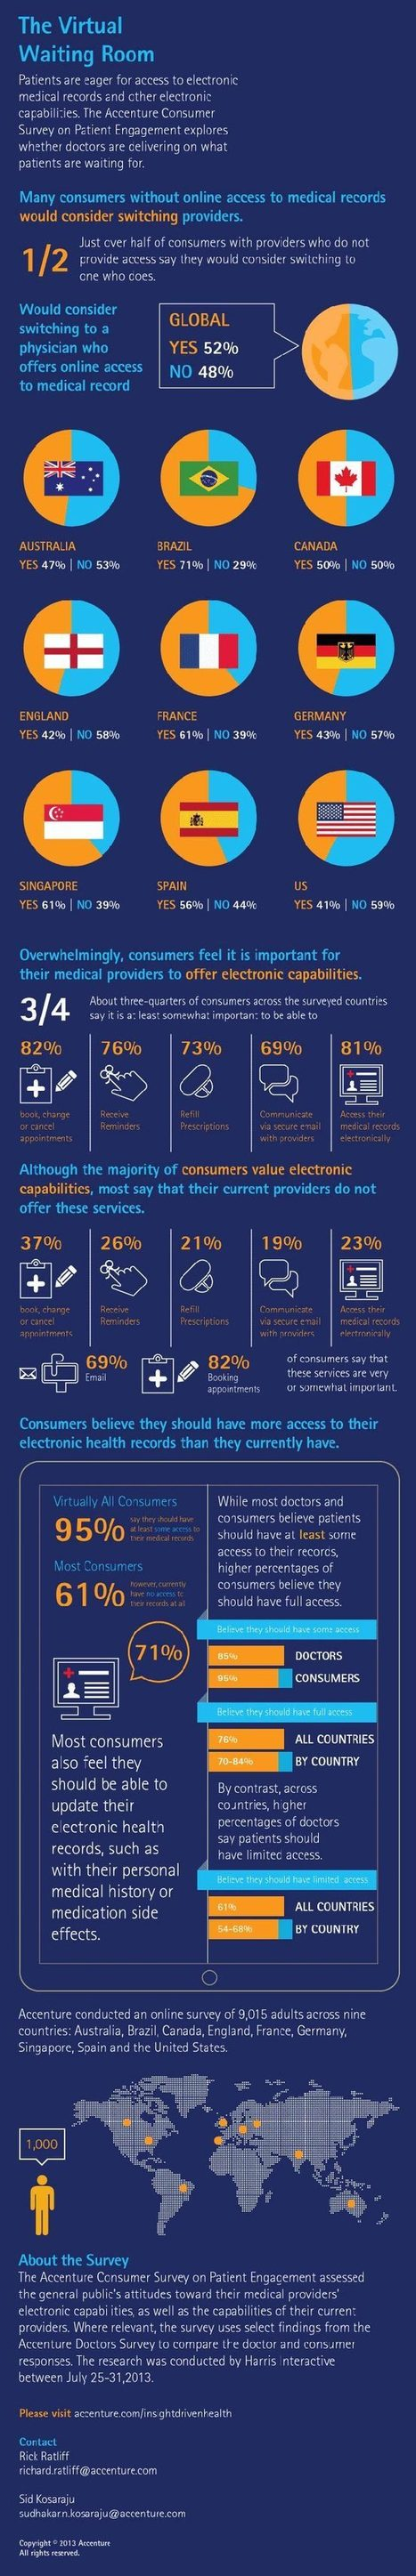 Accenture Consumer Survey on Patient Engagement - Infographic | Pharma & Medical Devices | Scoop.it